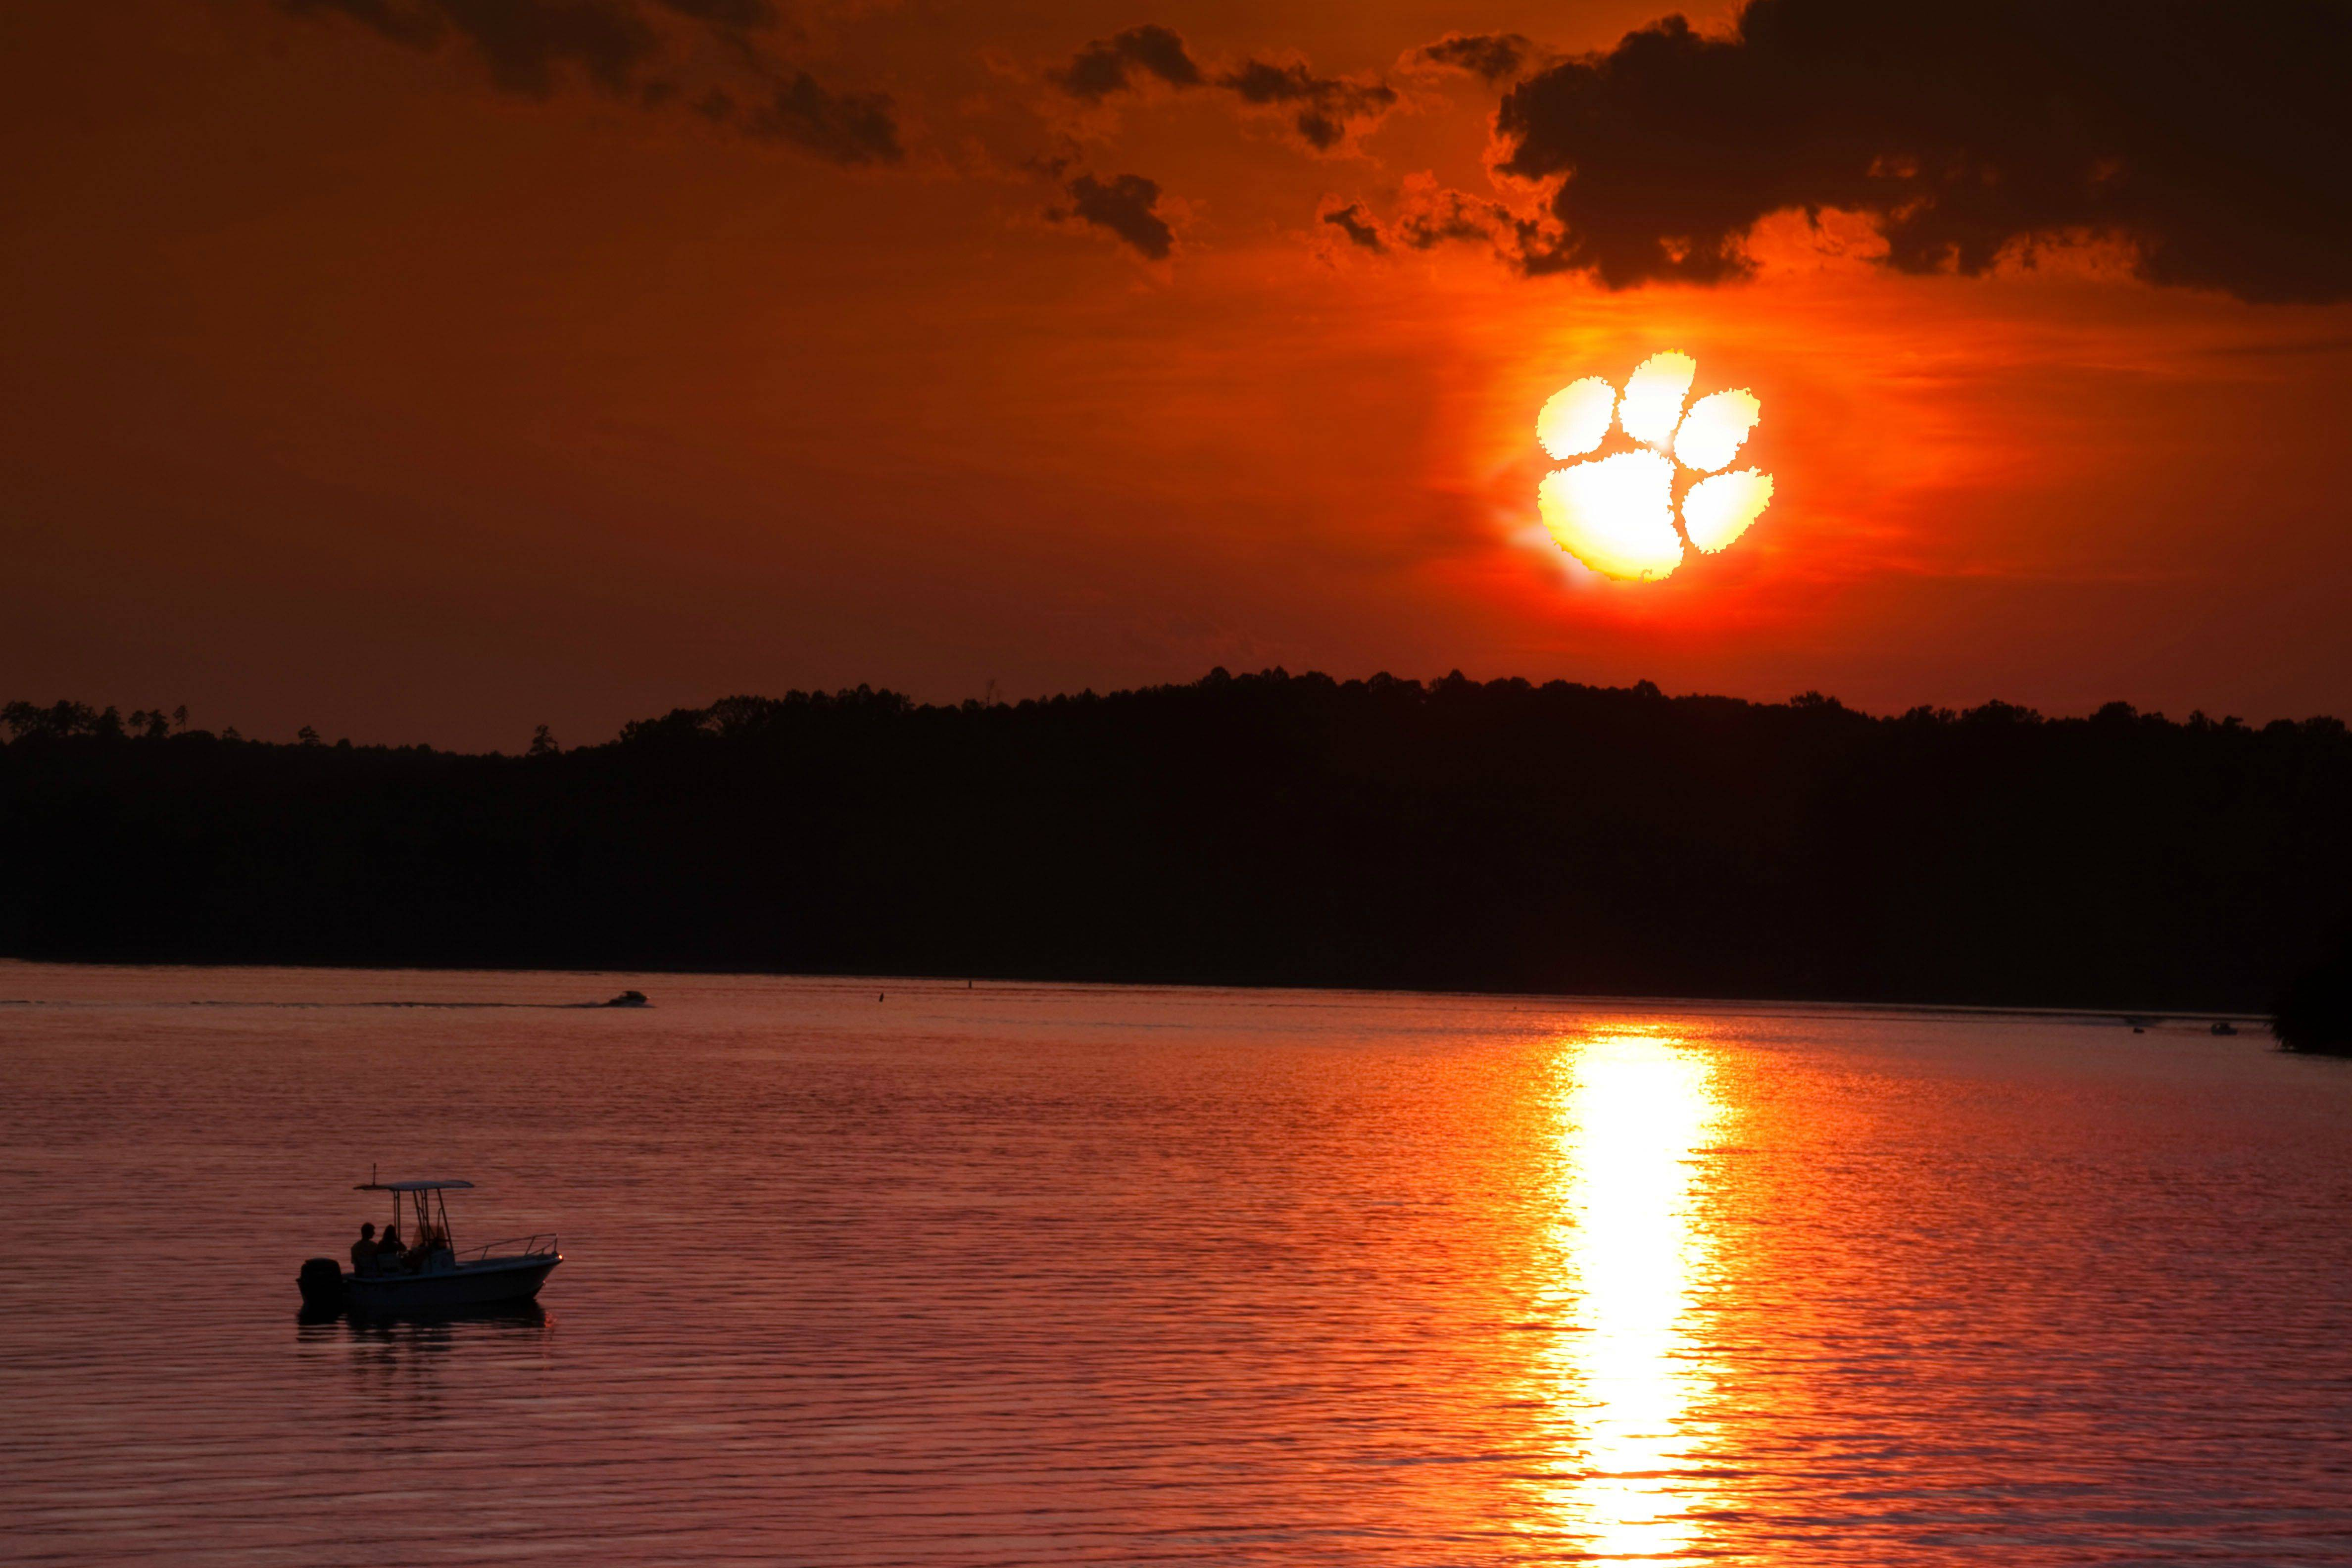 clemson tigers wallpaper - photo #12